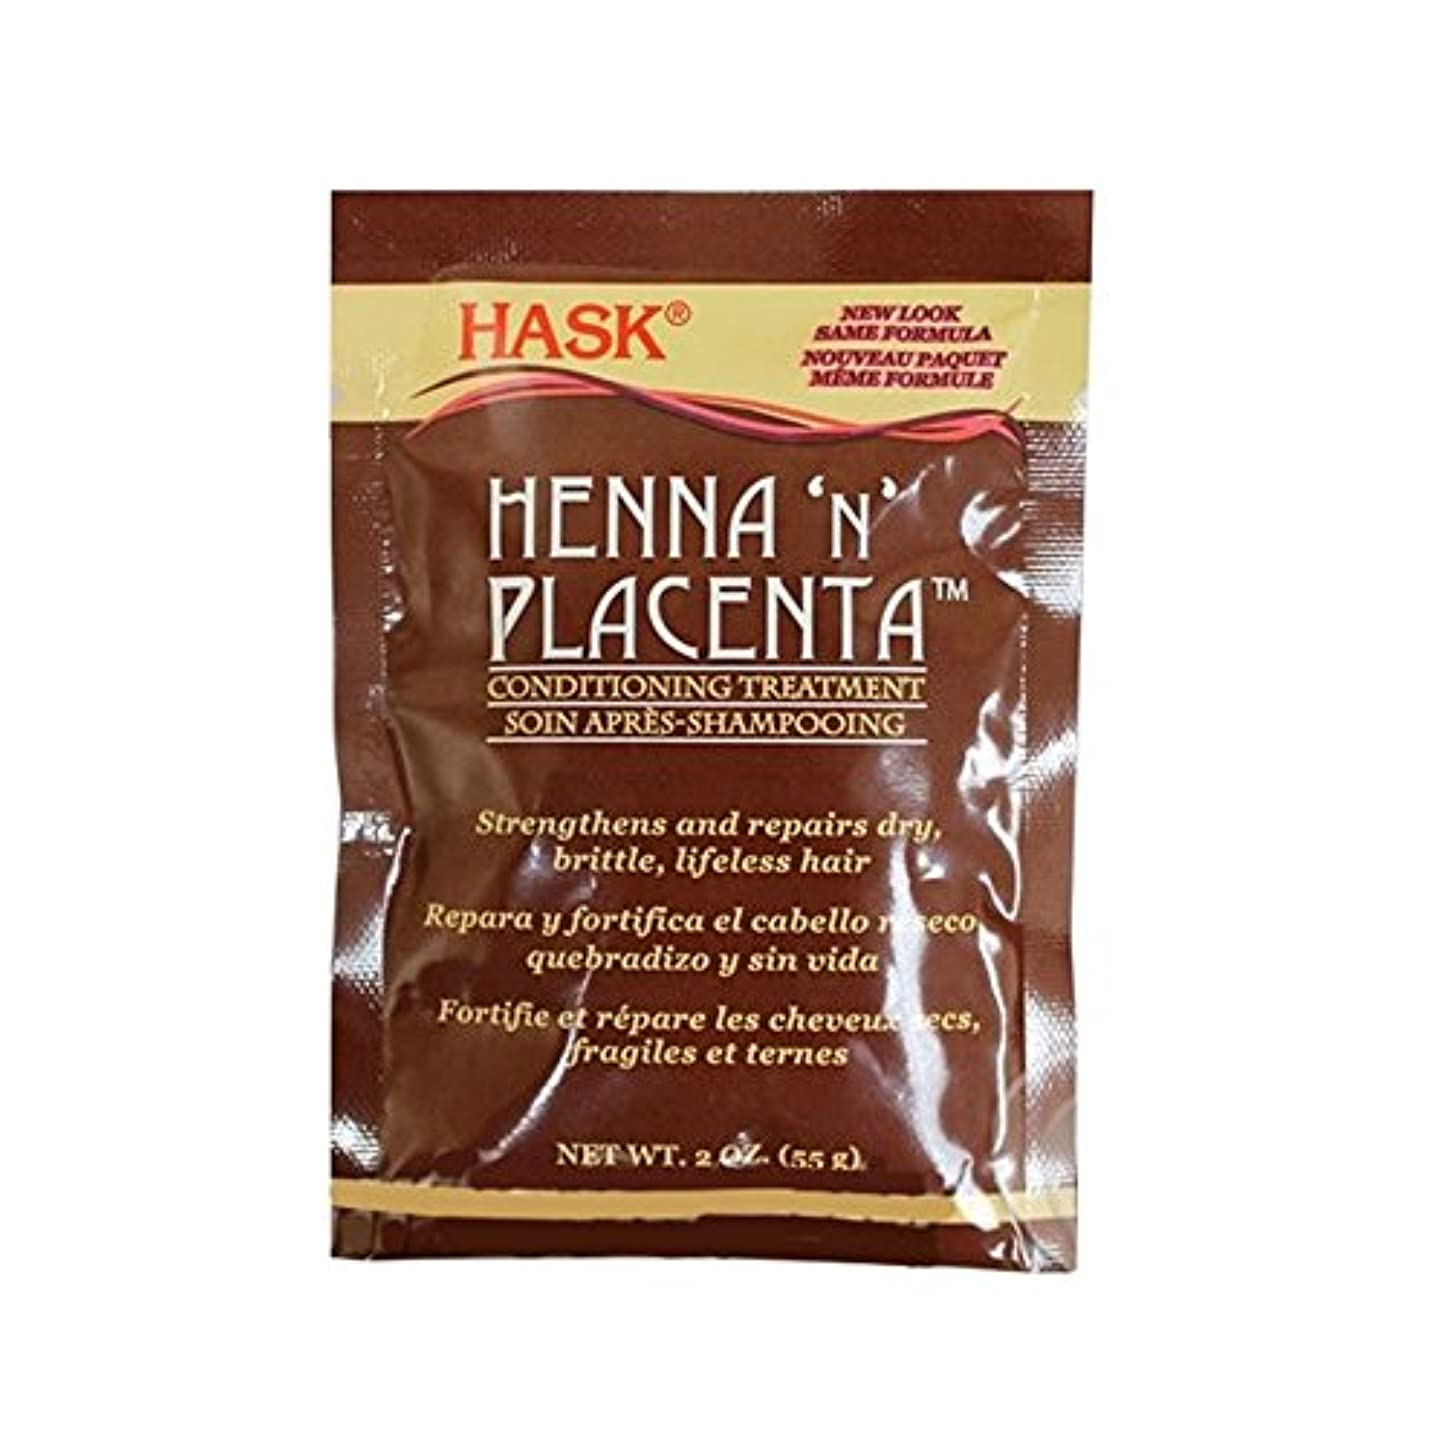 ヒール感謝狂乱(6 Pack) HASK Henna N Placenta Conditioning Treatment, 2 oz(New) (並行輸入品)